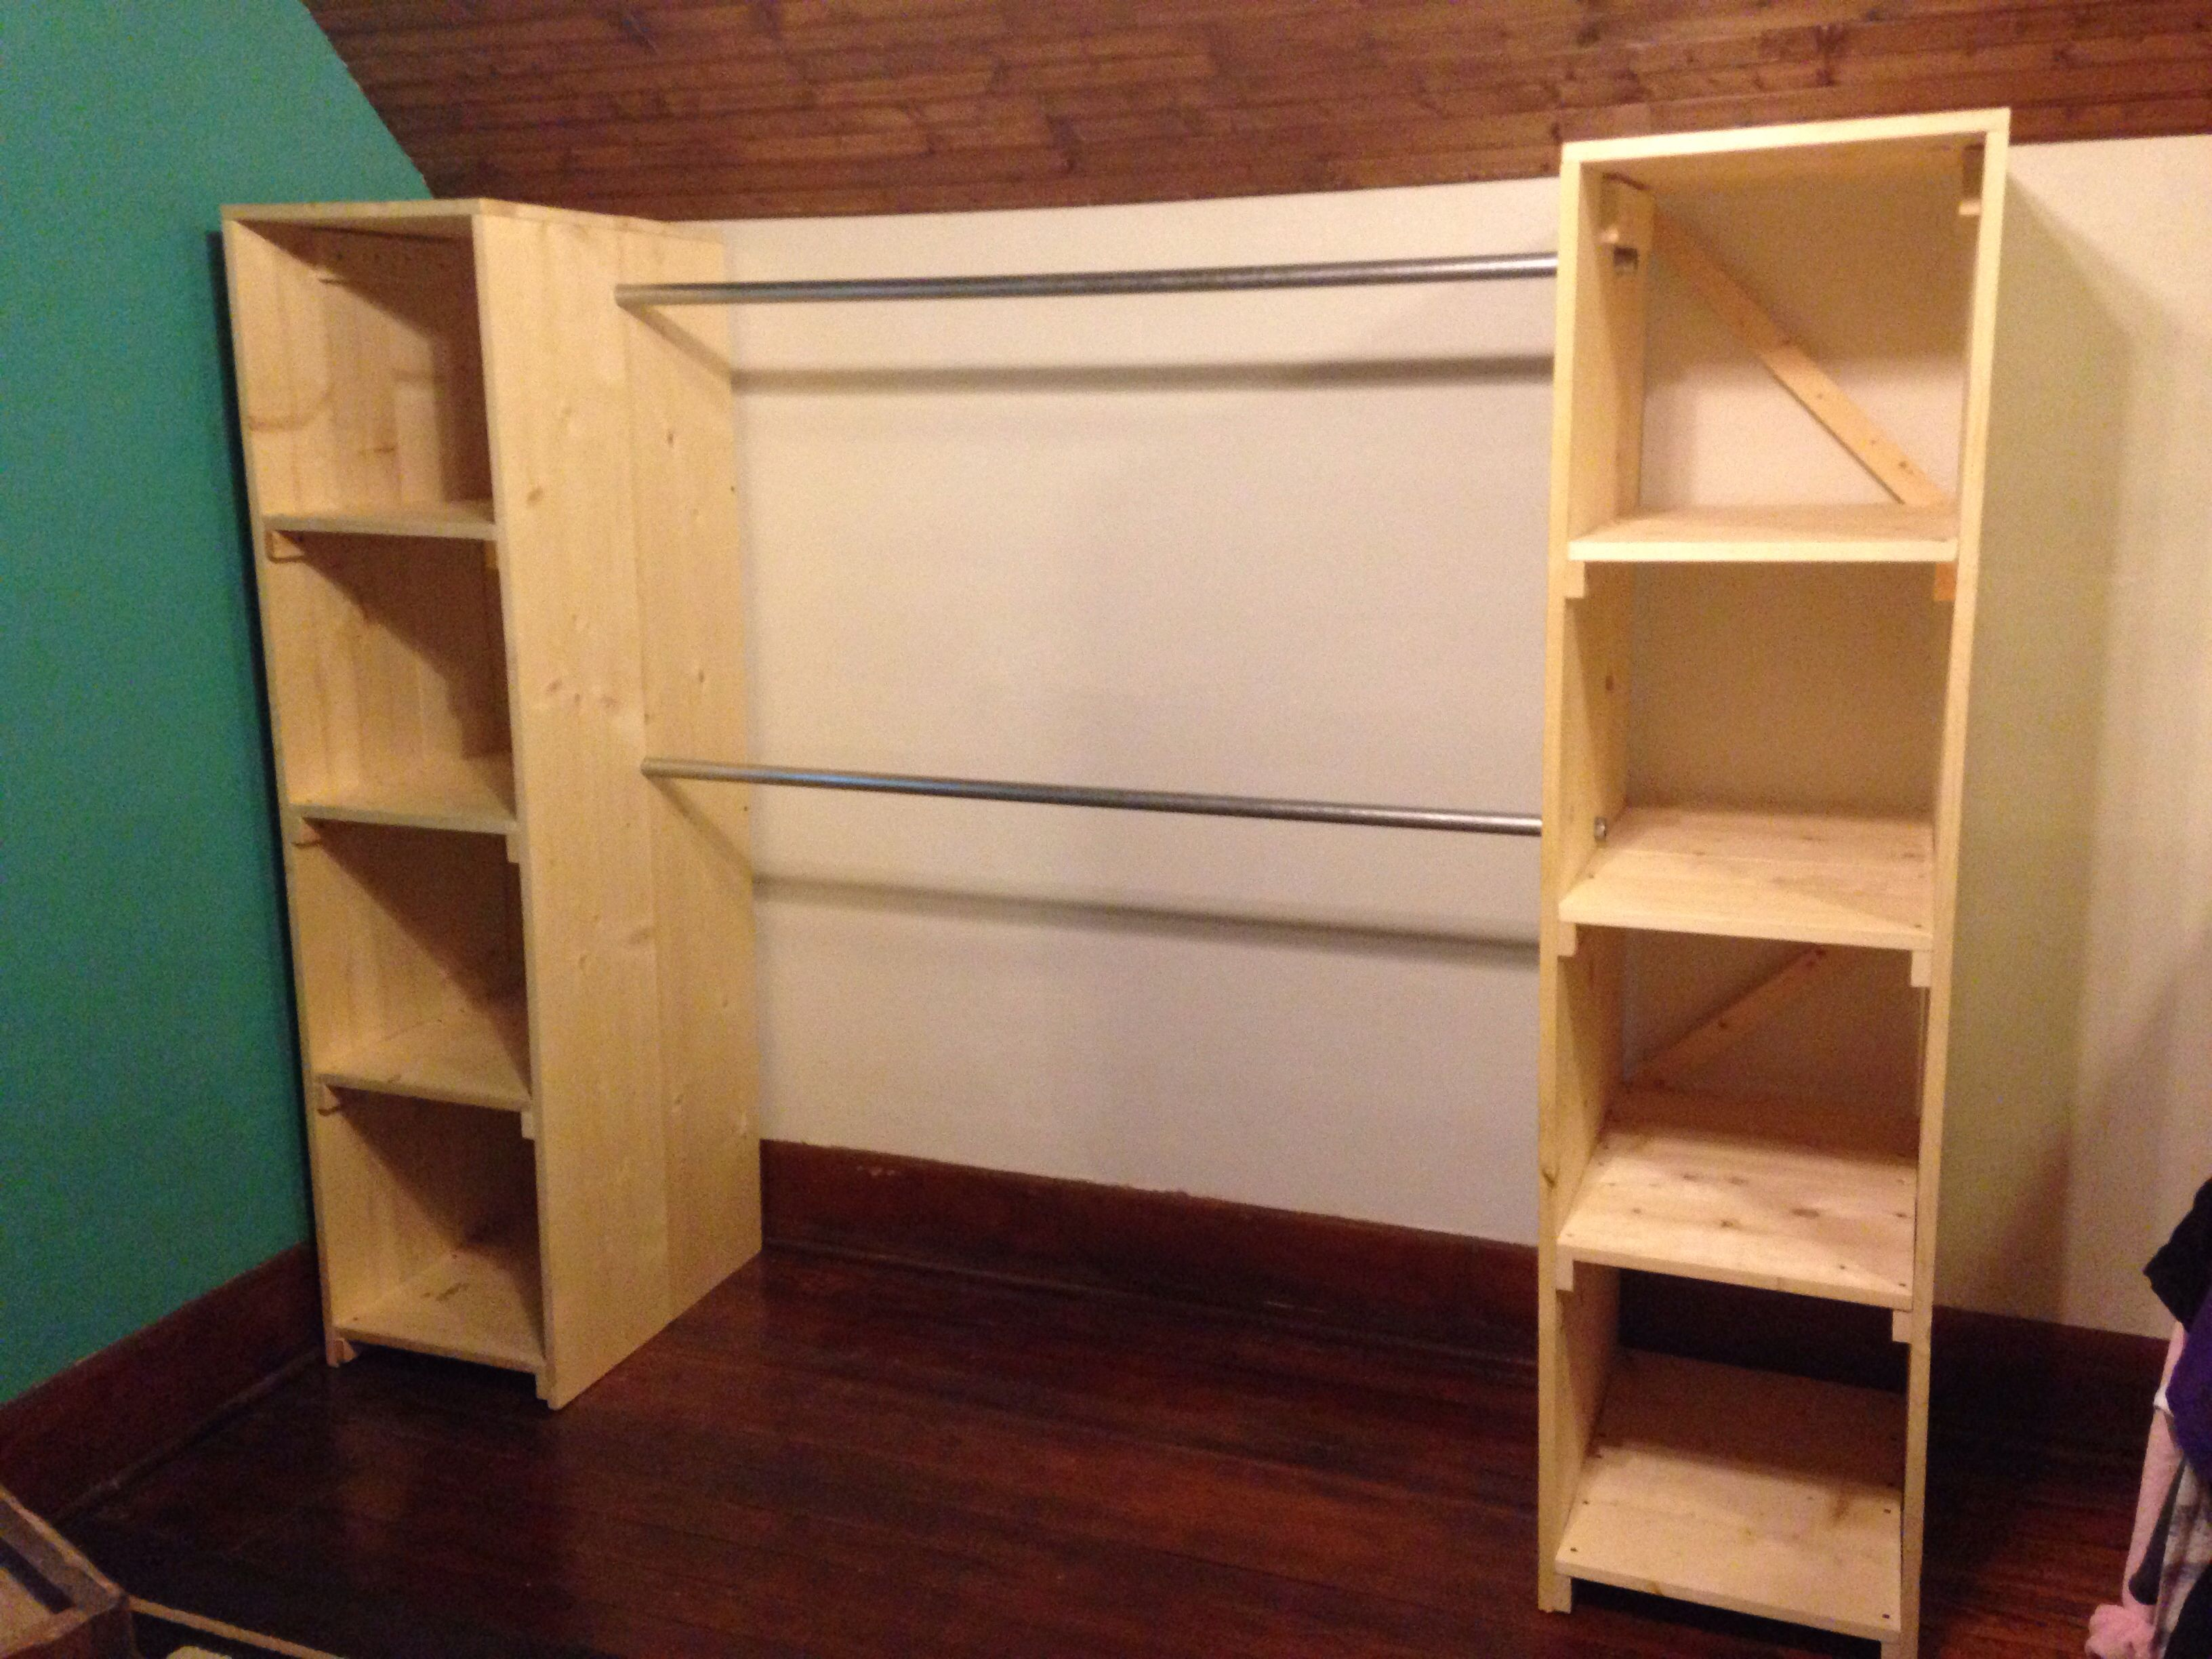 My Free Standing Closet Is Finished It S Perfect For Our Small Home With No Storage E